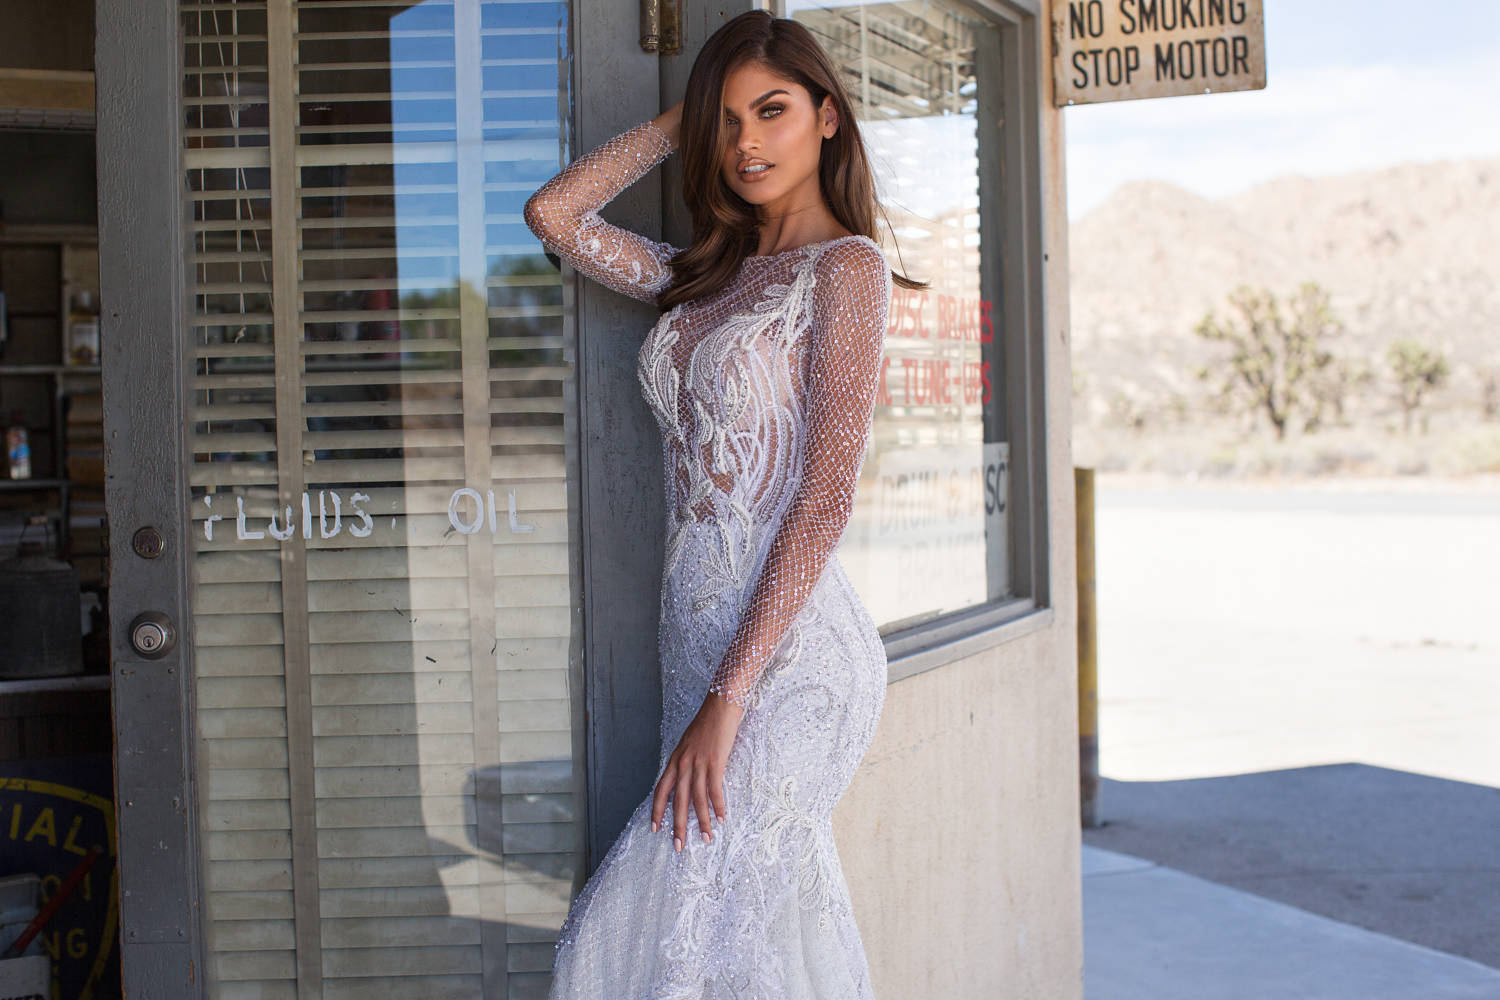 Blushing Bridal Boutique ,MillaNova, Lexy, California Dreaming, New Collection 2019 ,-wedding gown-Mississauga-woodbridge-vaughan-toronto-gta-ontario-canada-montreal-buffalo-NYC-california